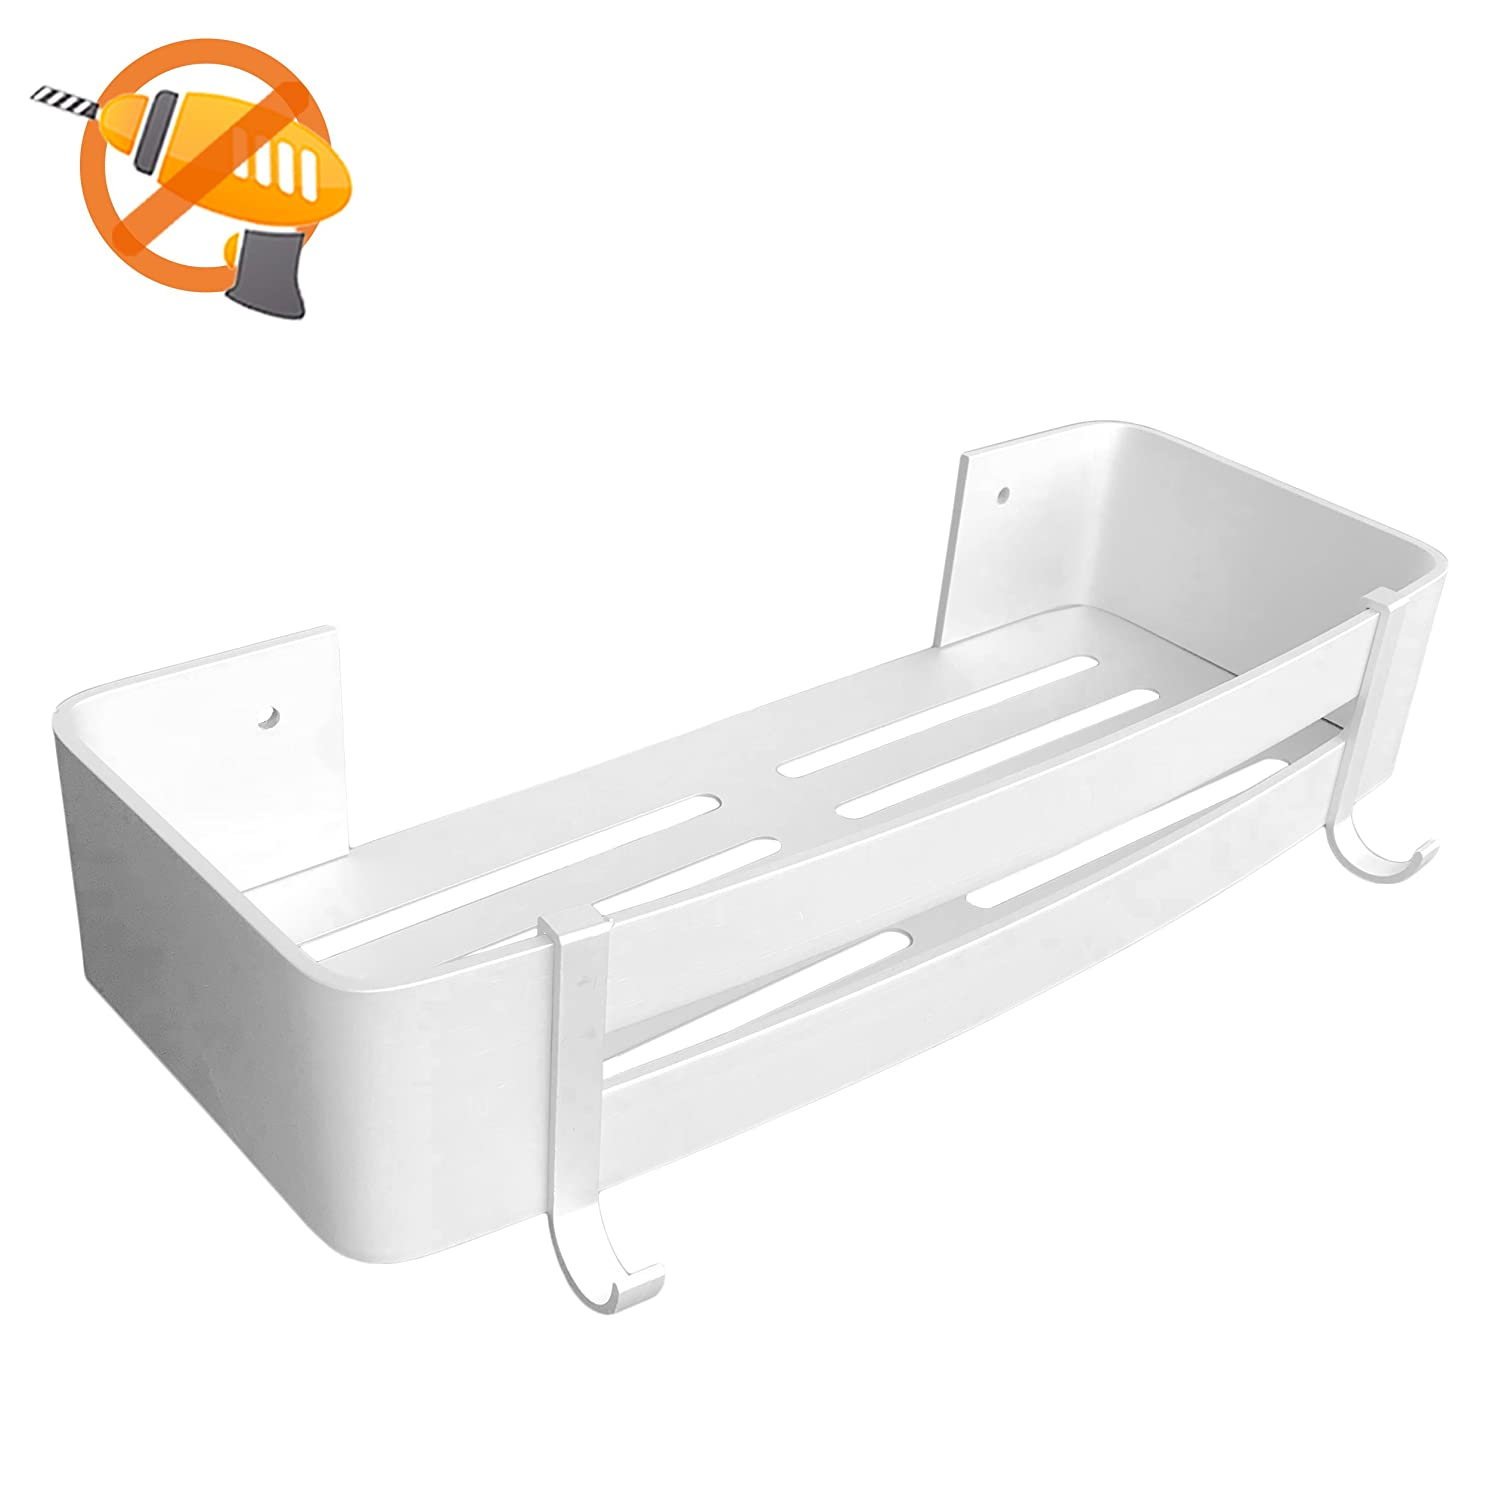 Wall Mount Storage Shelf Basket for Bathroom and Kitchen, 3M Self-Adhesive, Space Aluminum (Rectangle)